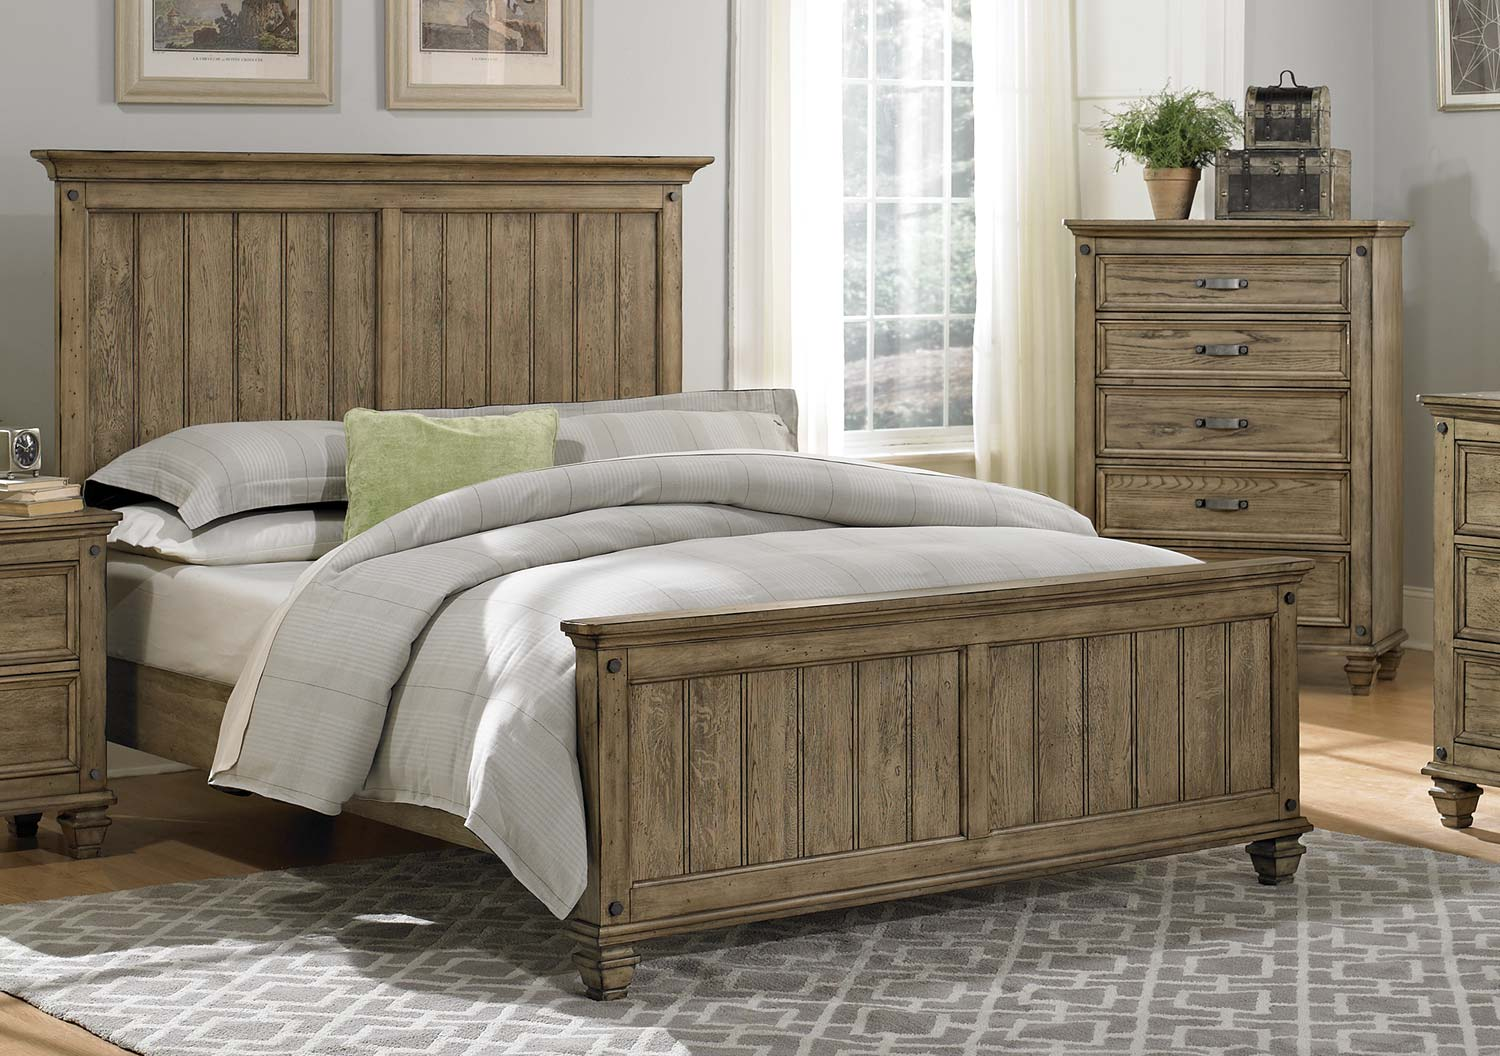 Bedroom furniture oak